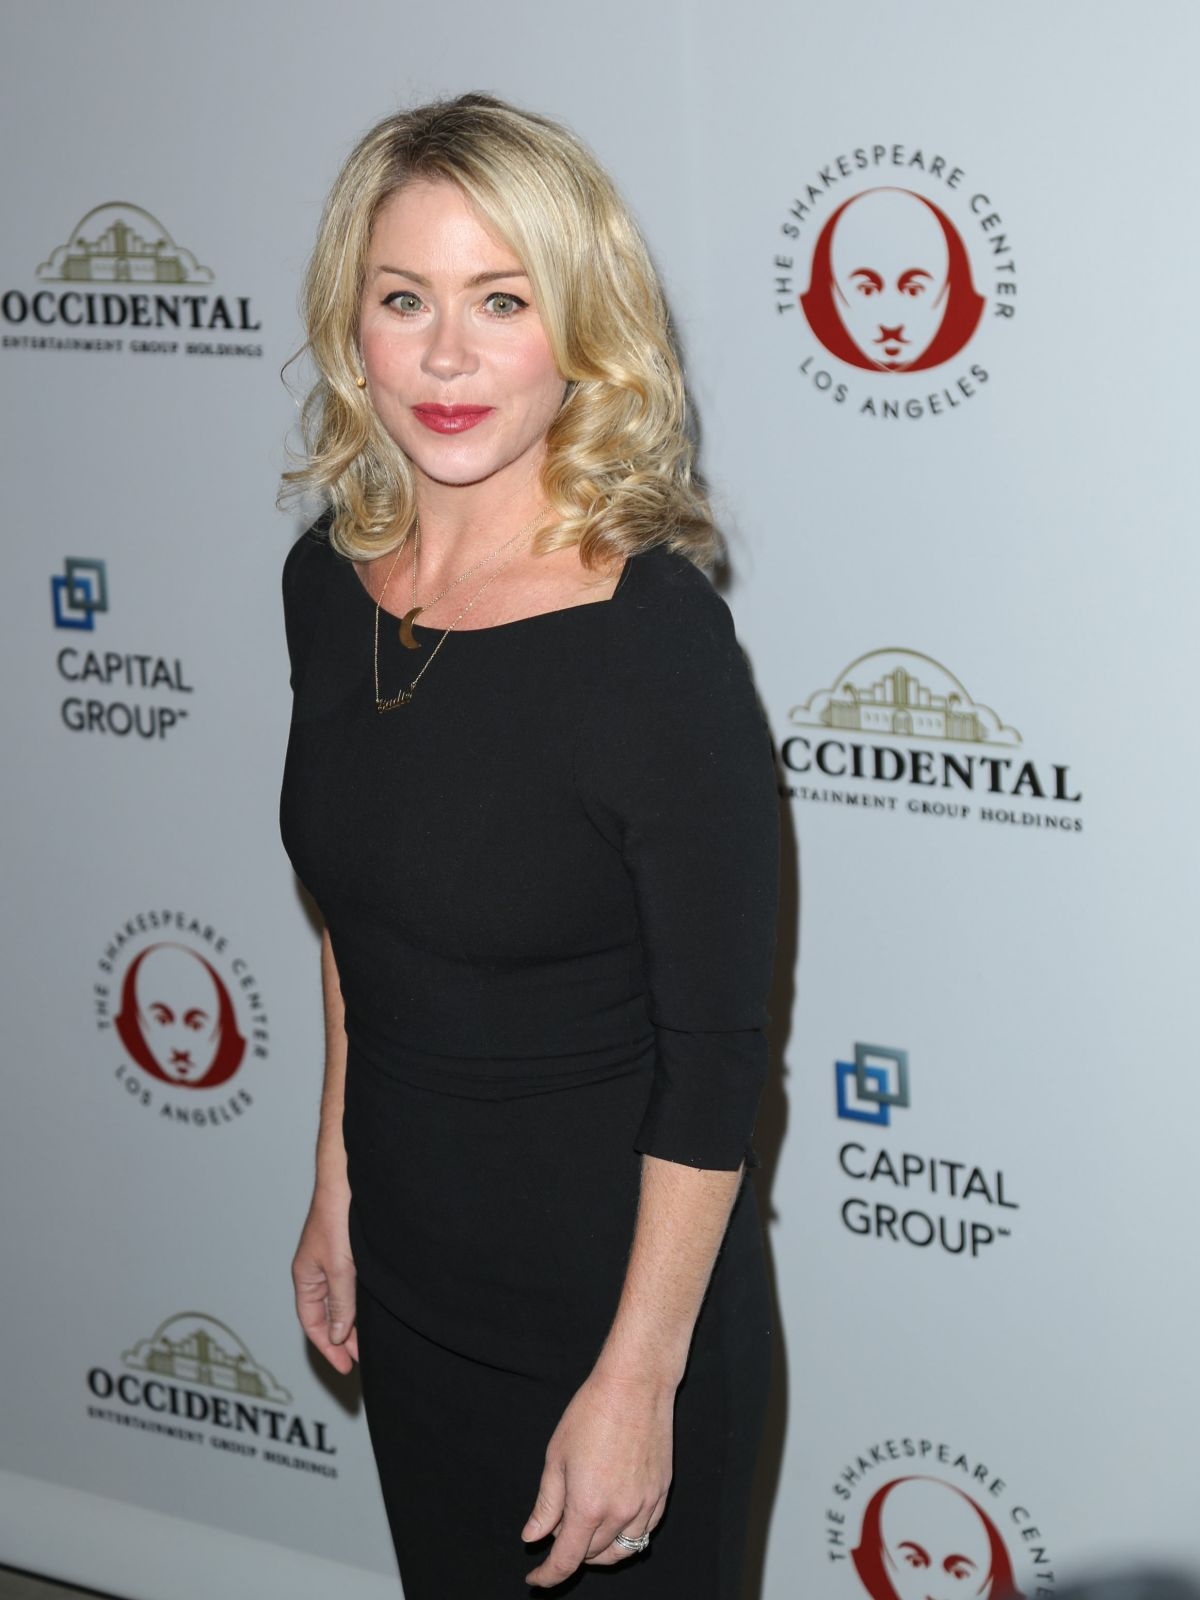 CHRISTINA APPLEGATE at 25th Annual Simply Shakespeare Benefit in Los Angeles 12/08/2015